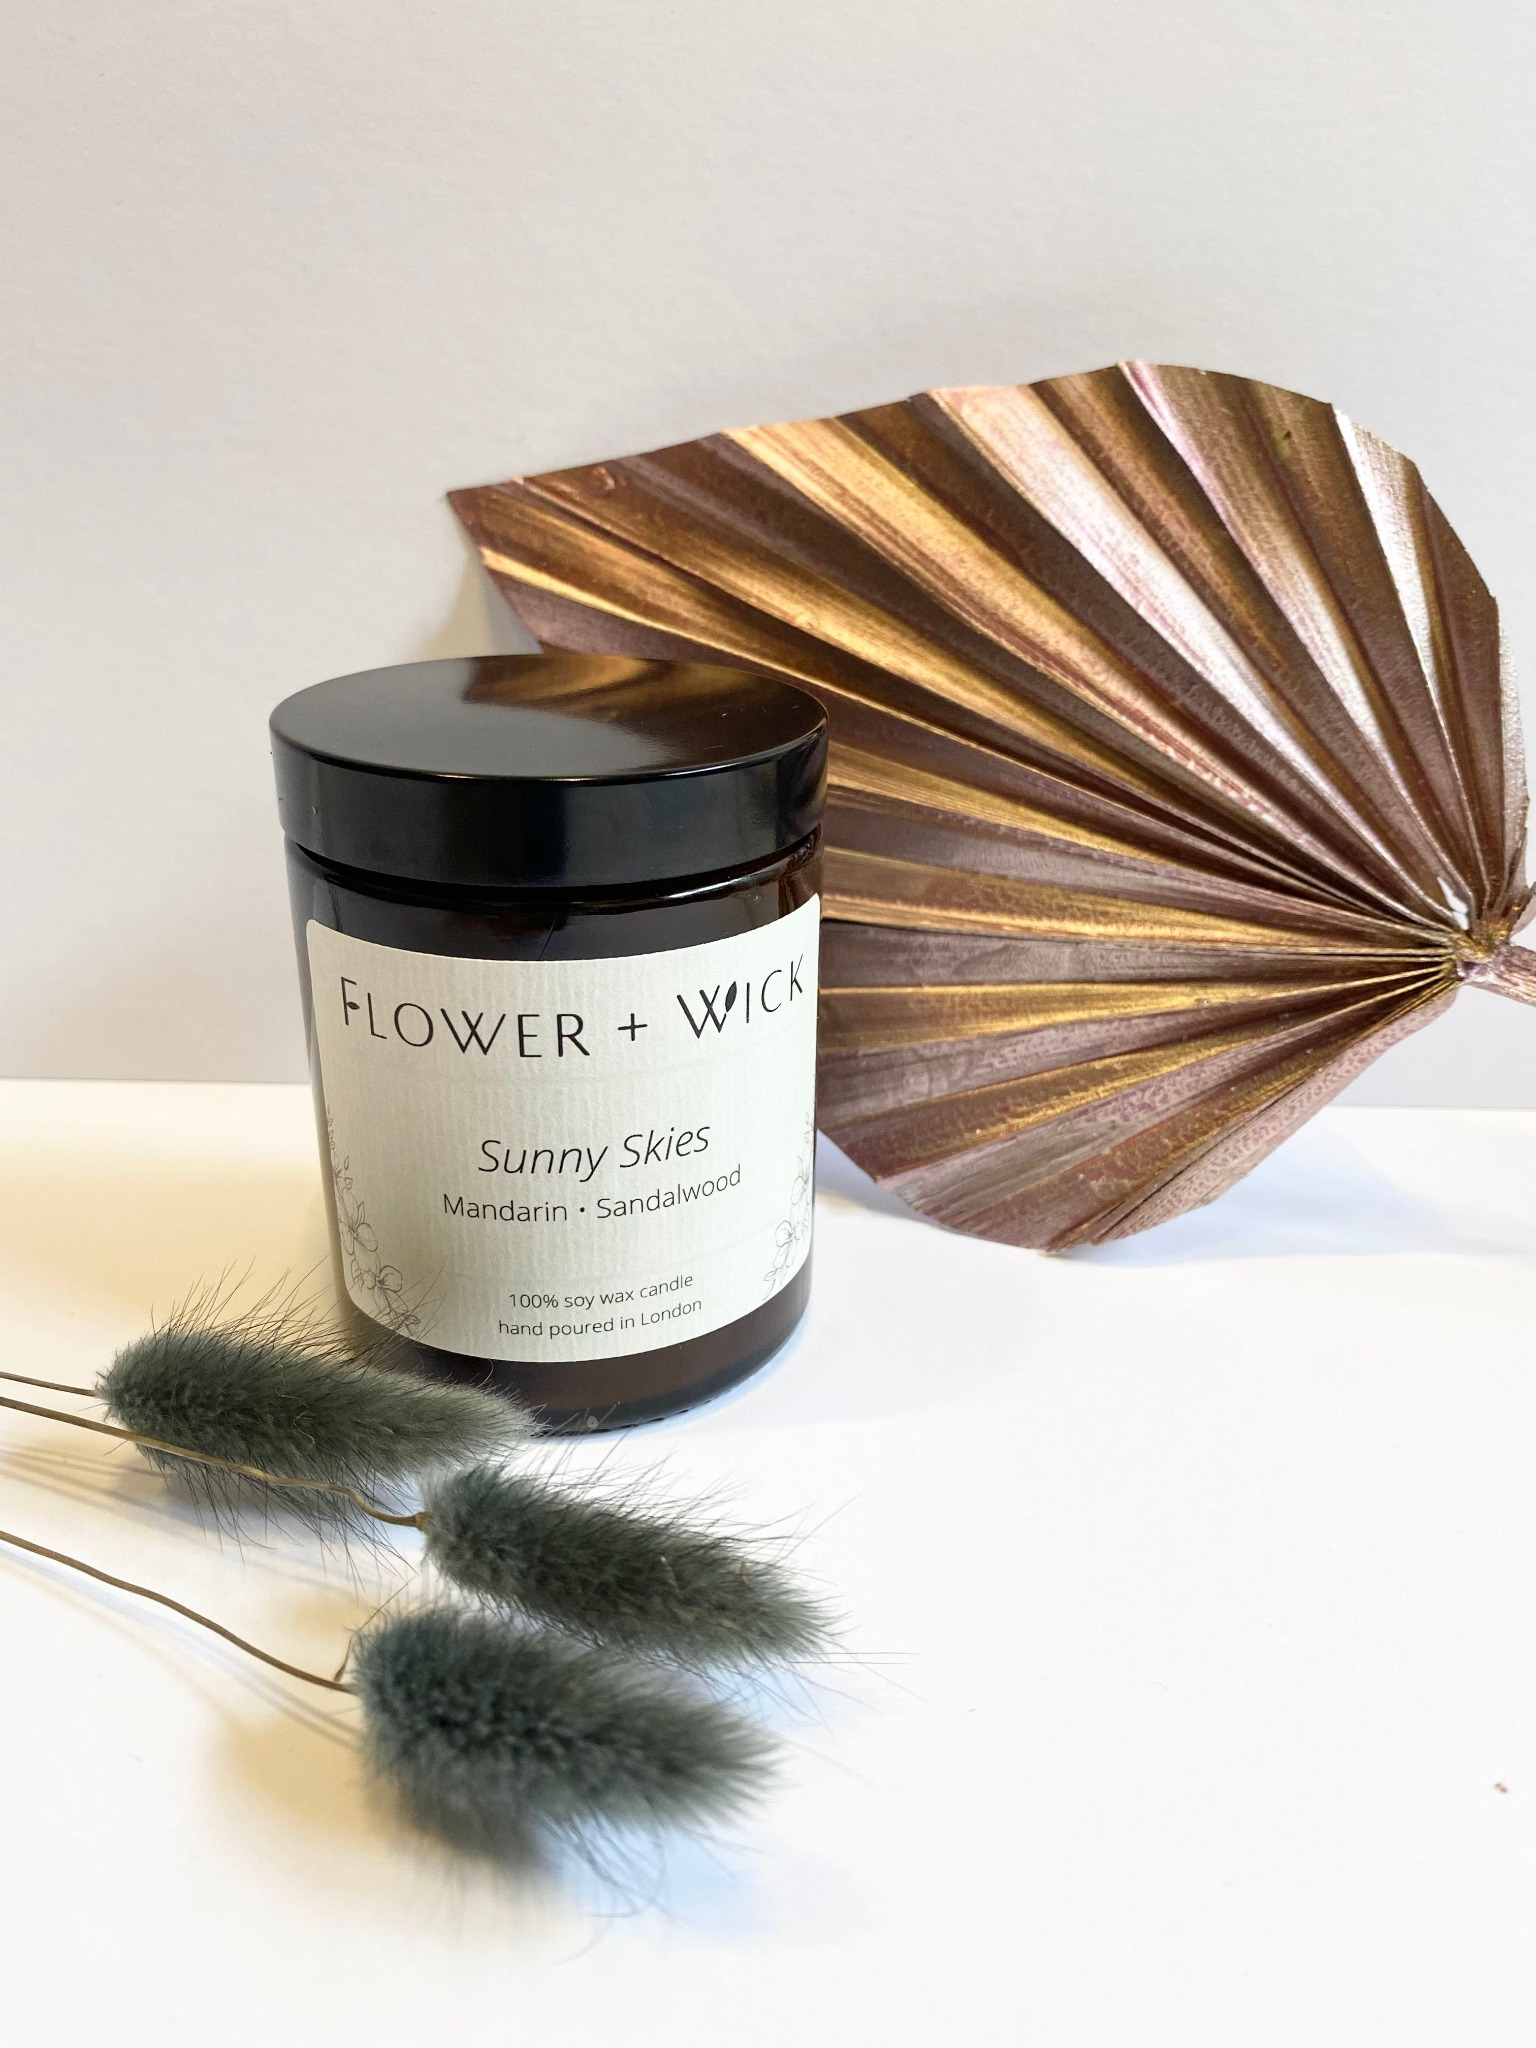 Flower + Wick: Sunny Skies scented soy candle